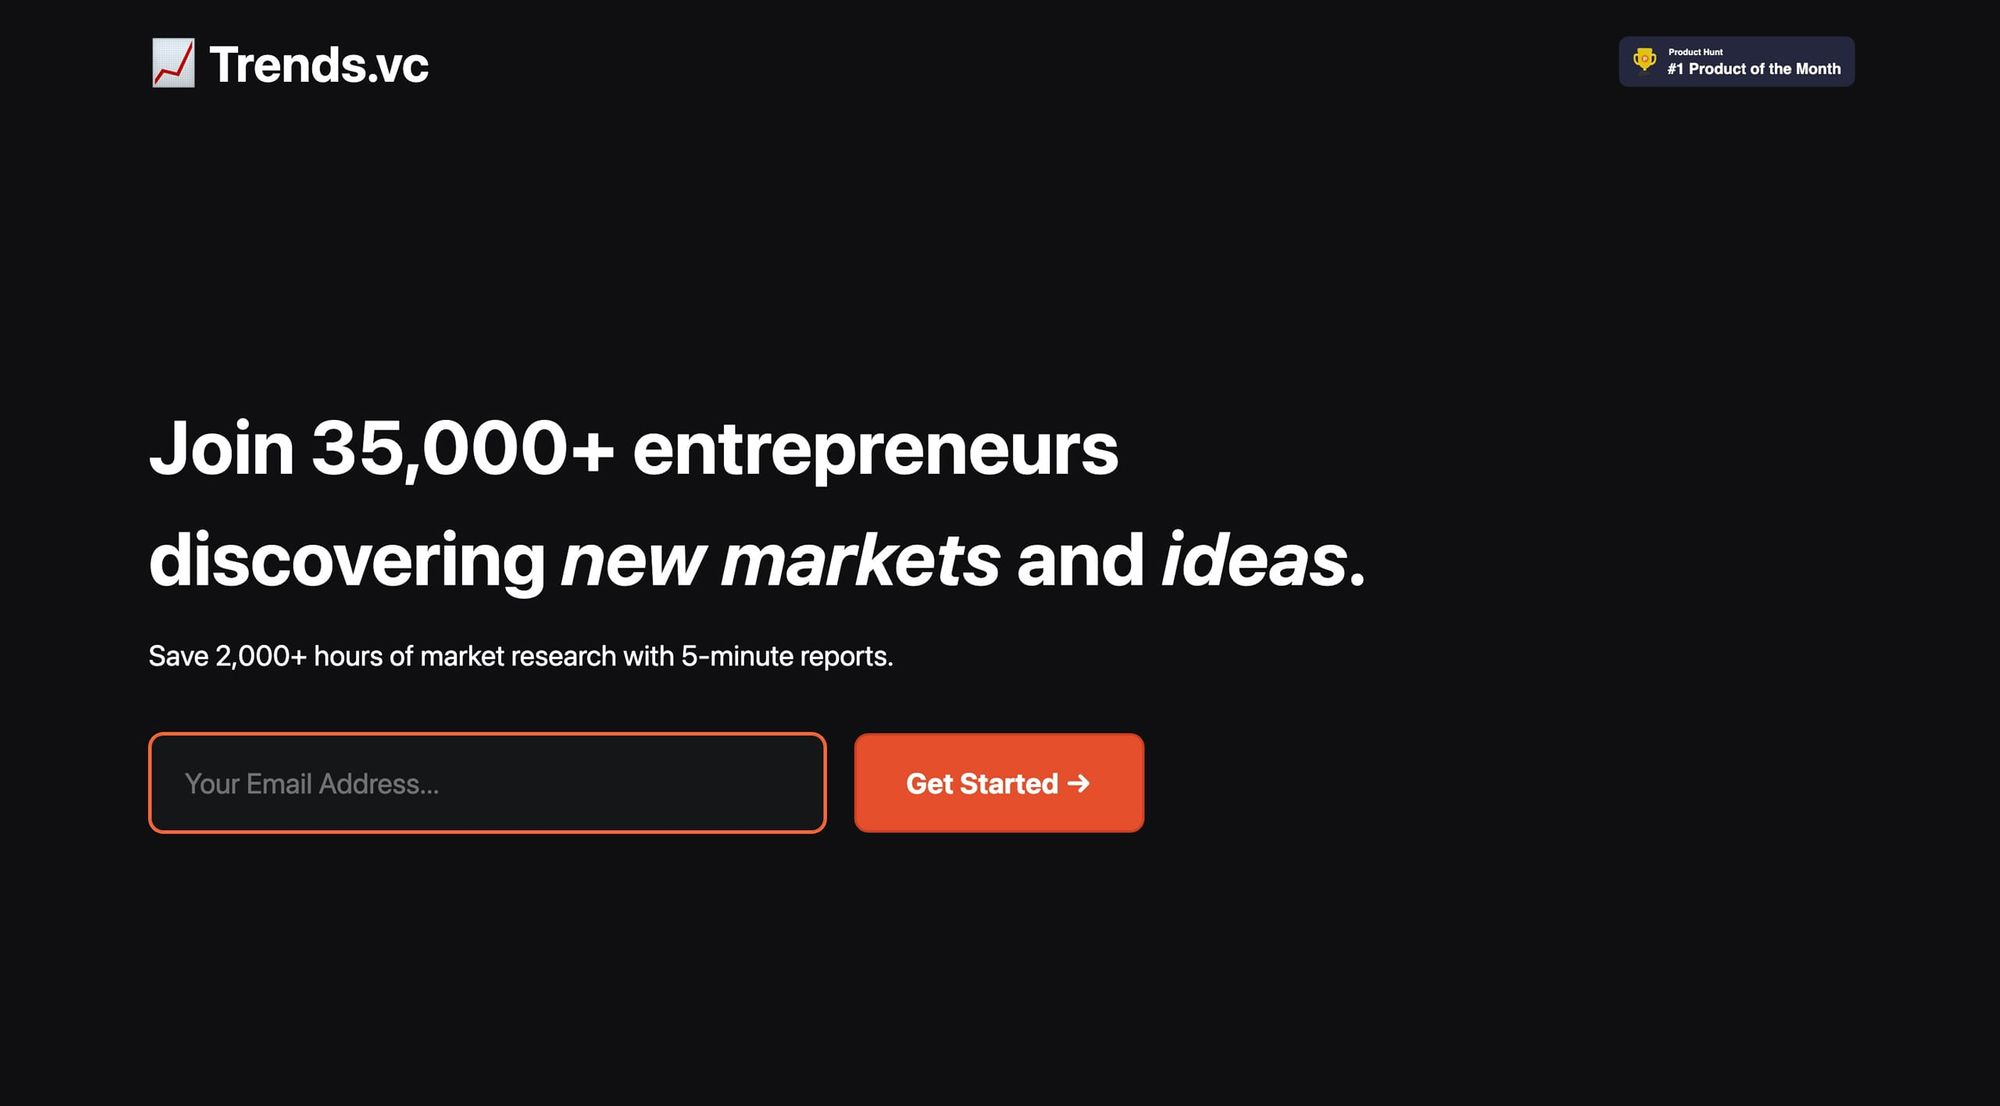 Trends.vc social proof on the sign up page, featuring a product hunt award, and the number of subscribers